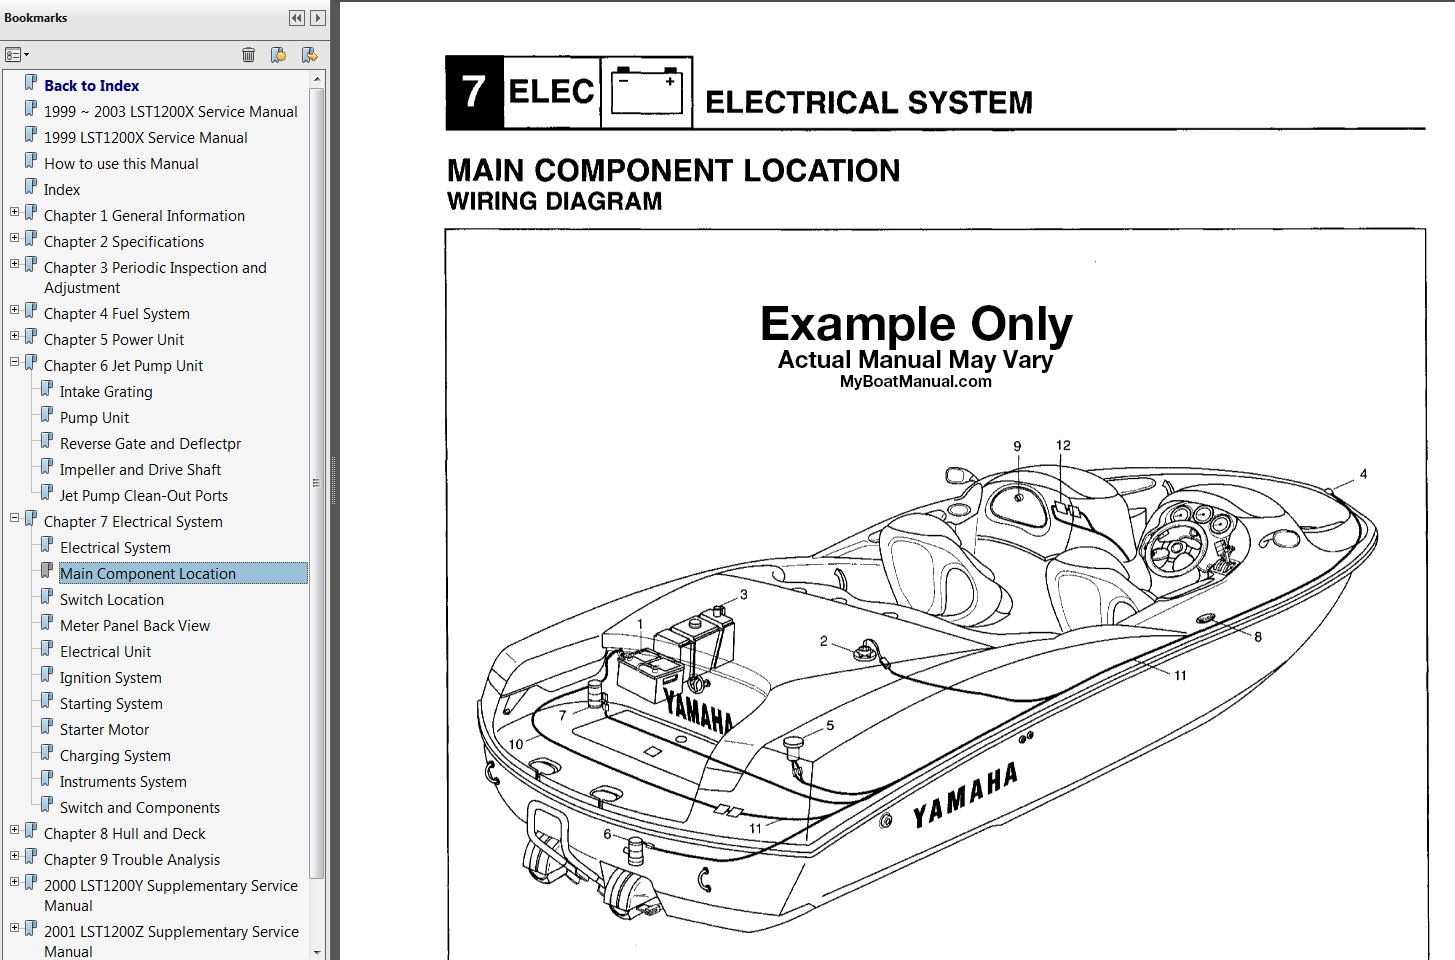 hight resolution of 1996 1998 yamaha exciter 220 jet boat service manual